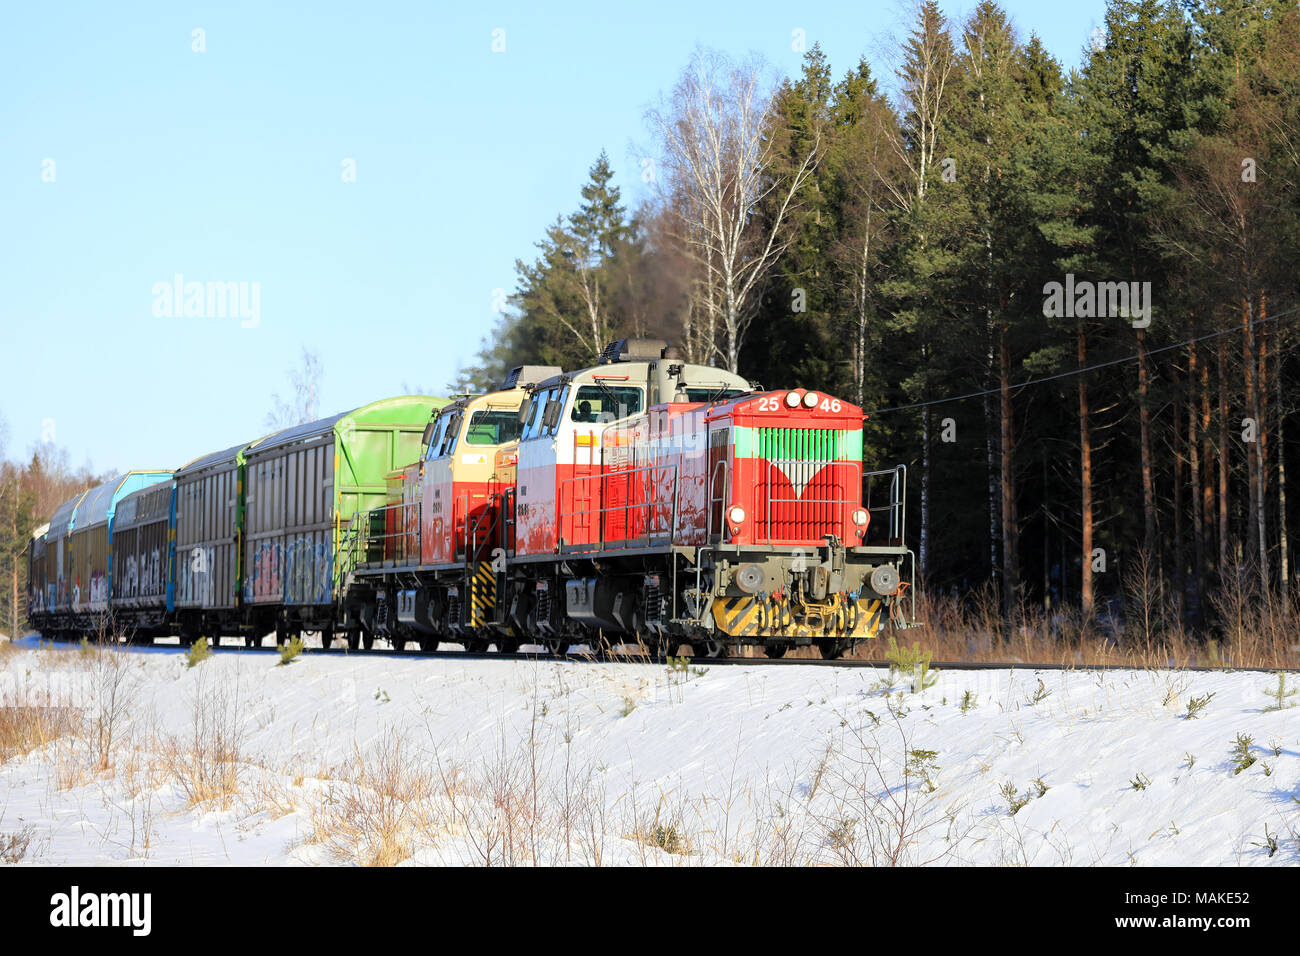 RAASEPORI, FINLAND - MARCH 16, 2018: Two diesel engines in front of freight train at speed in winter in South of Finland. - Stock Image